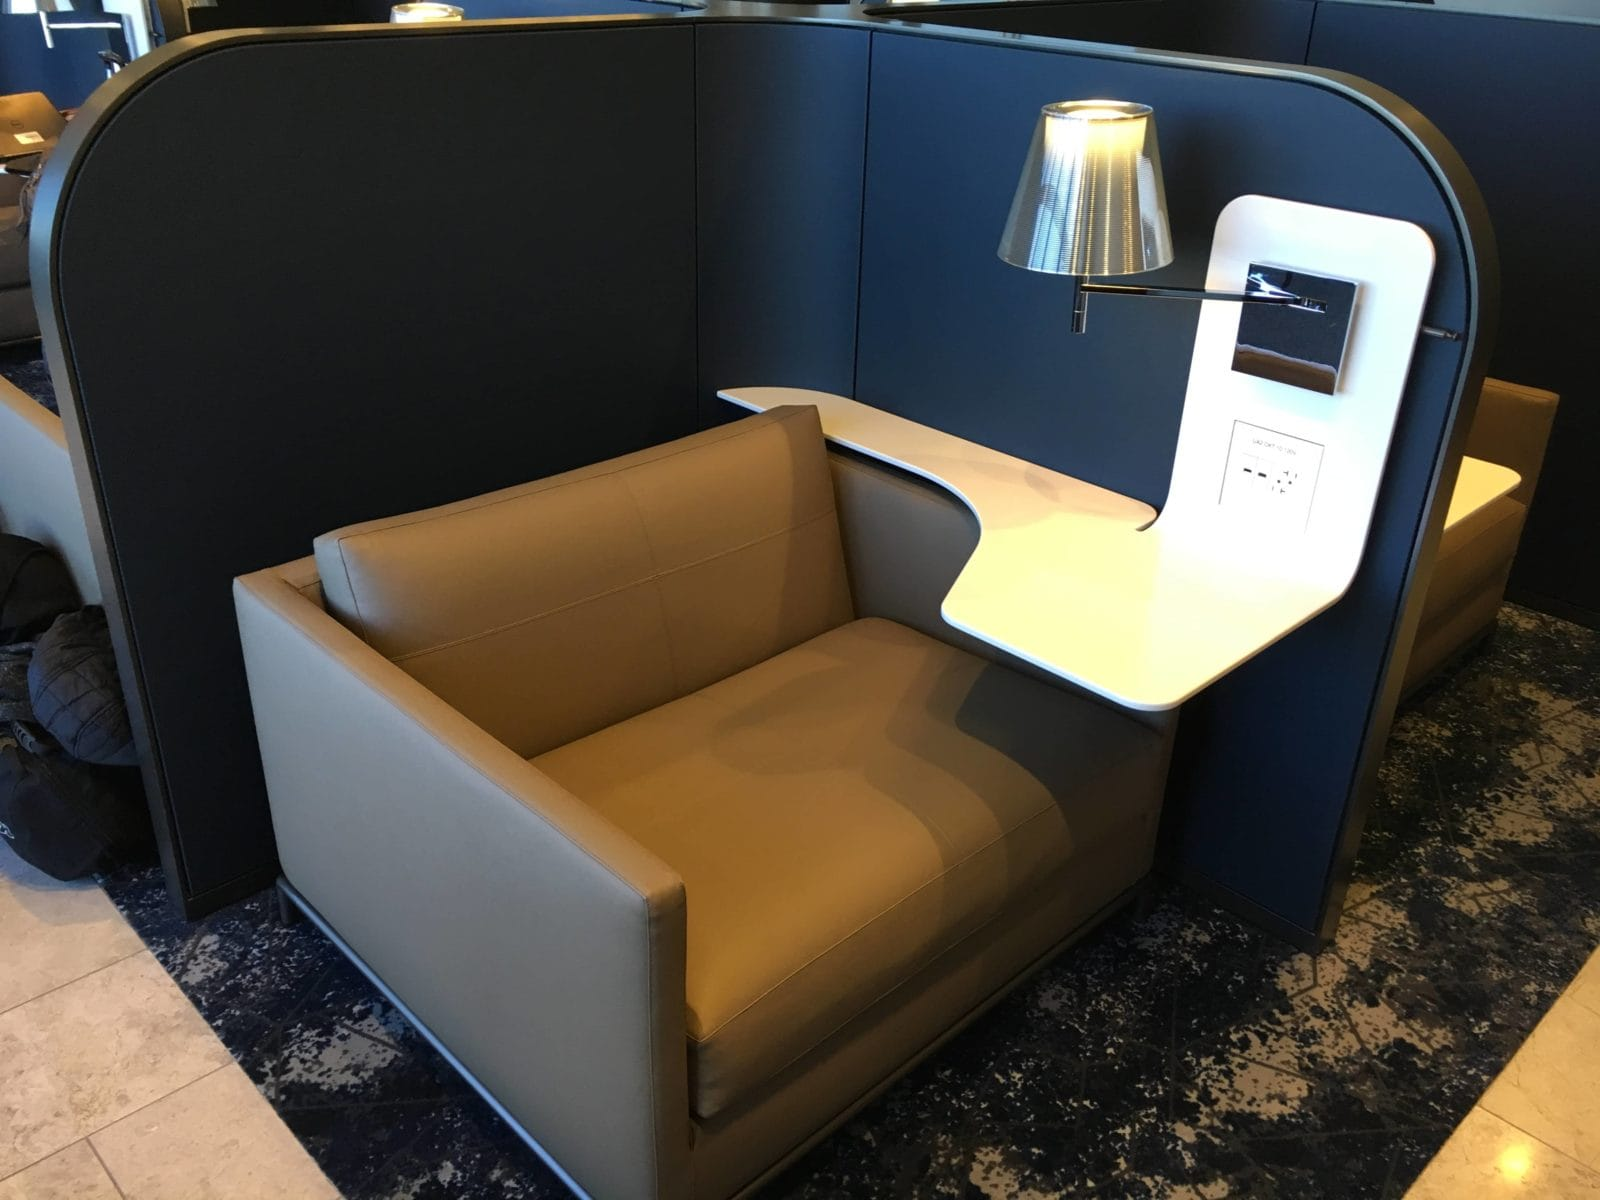 United Polaris Lounge LAX - Kabine